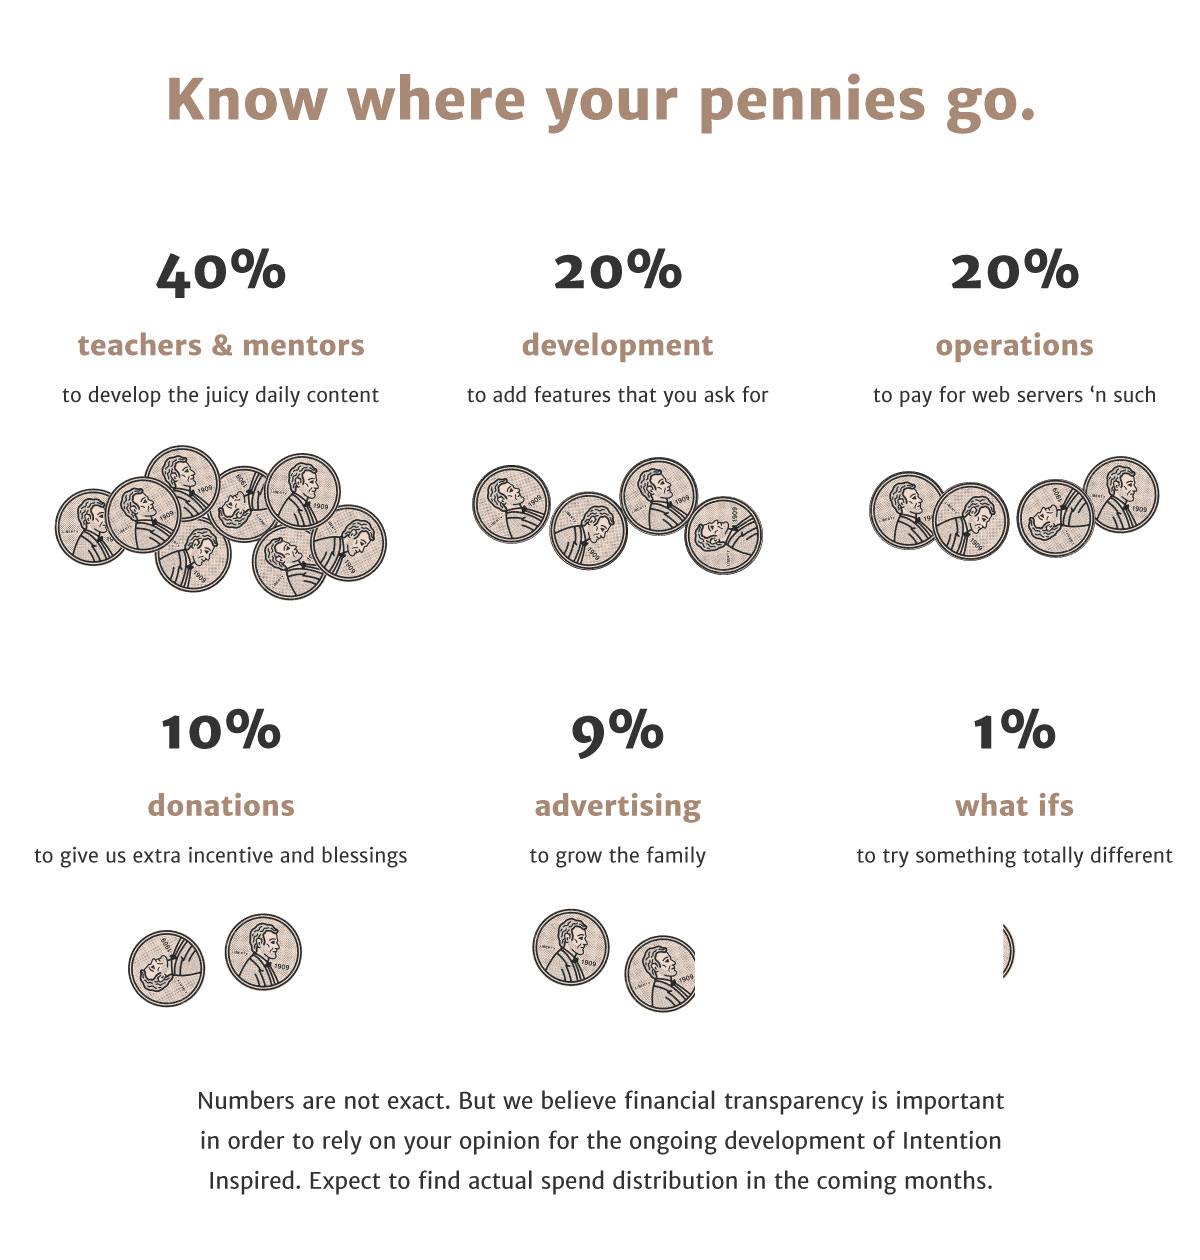 Know where your pennies go.